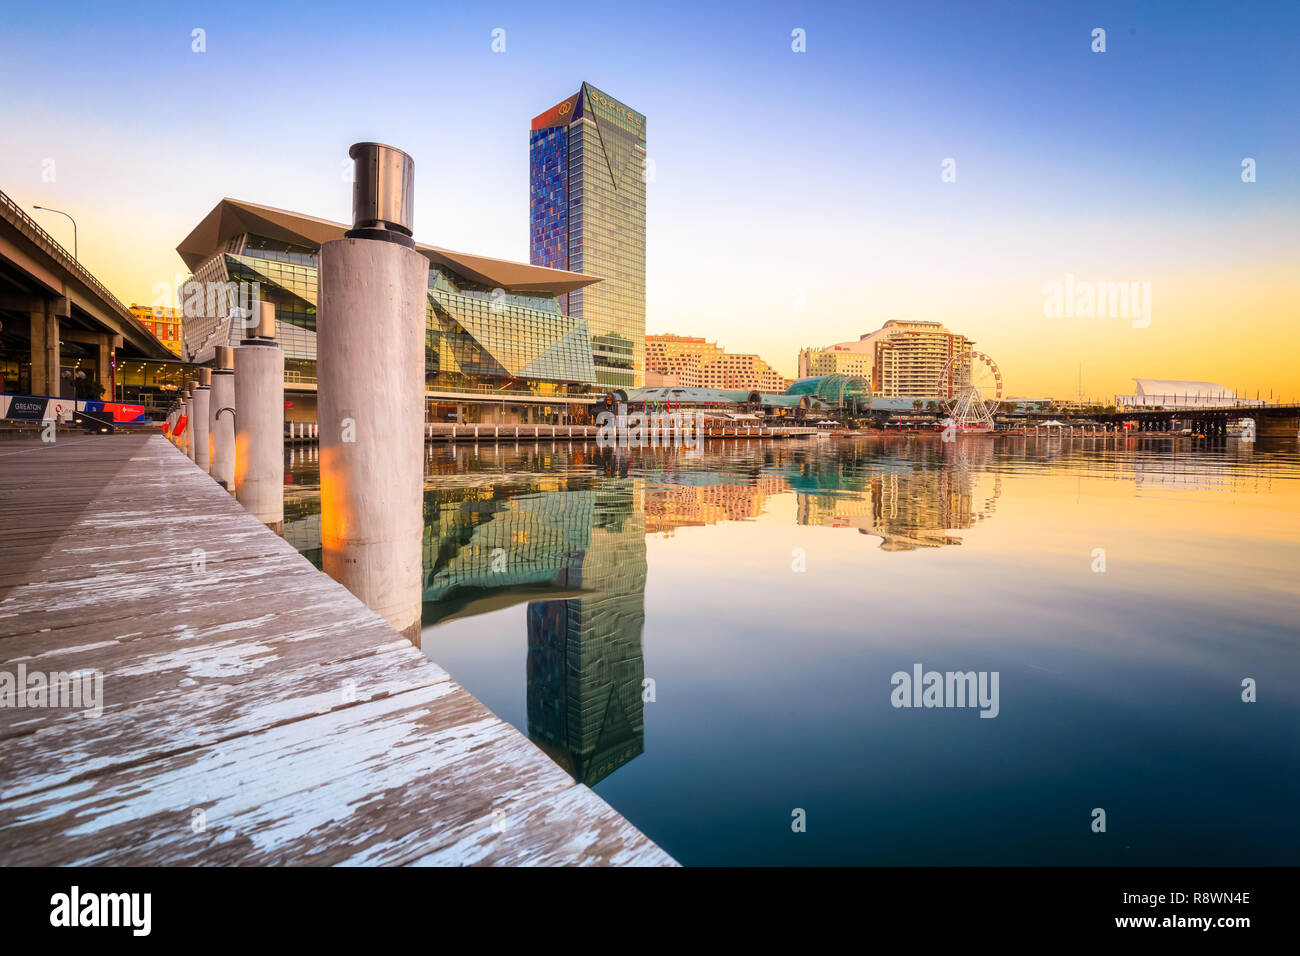 Darling Harbour reflection - Stock Image